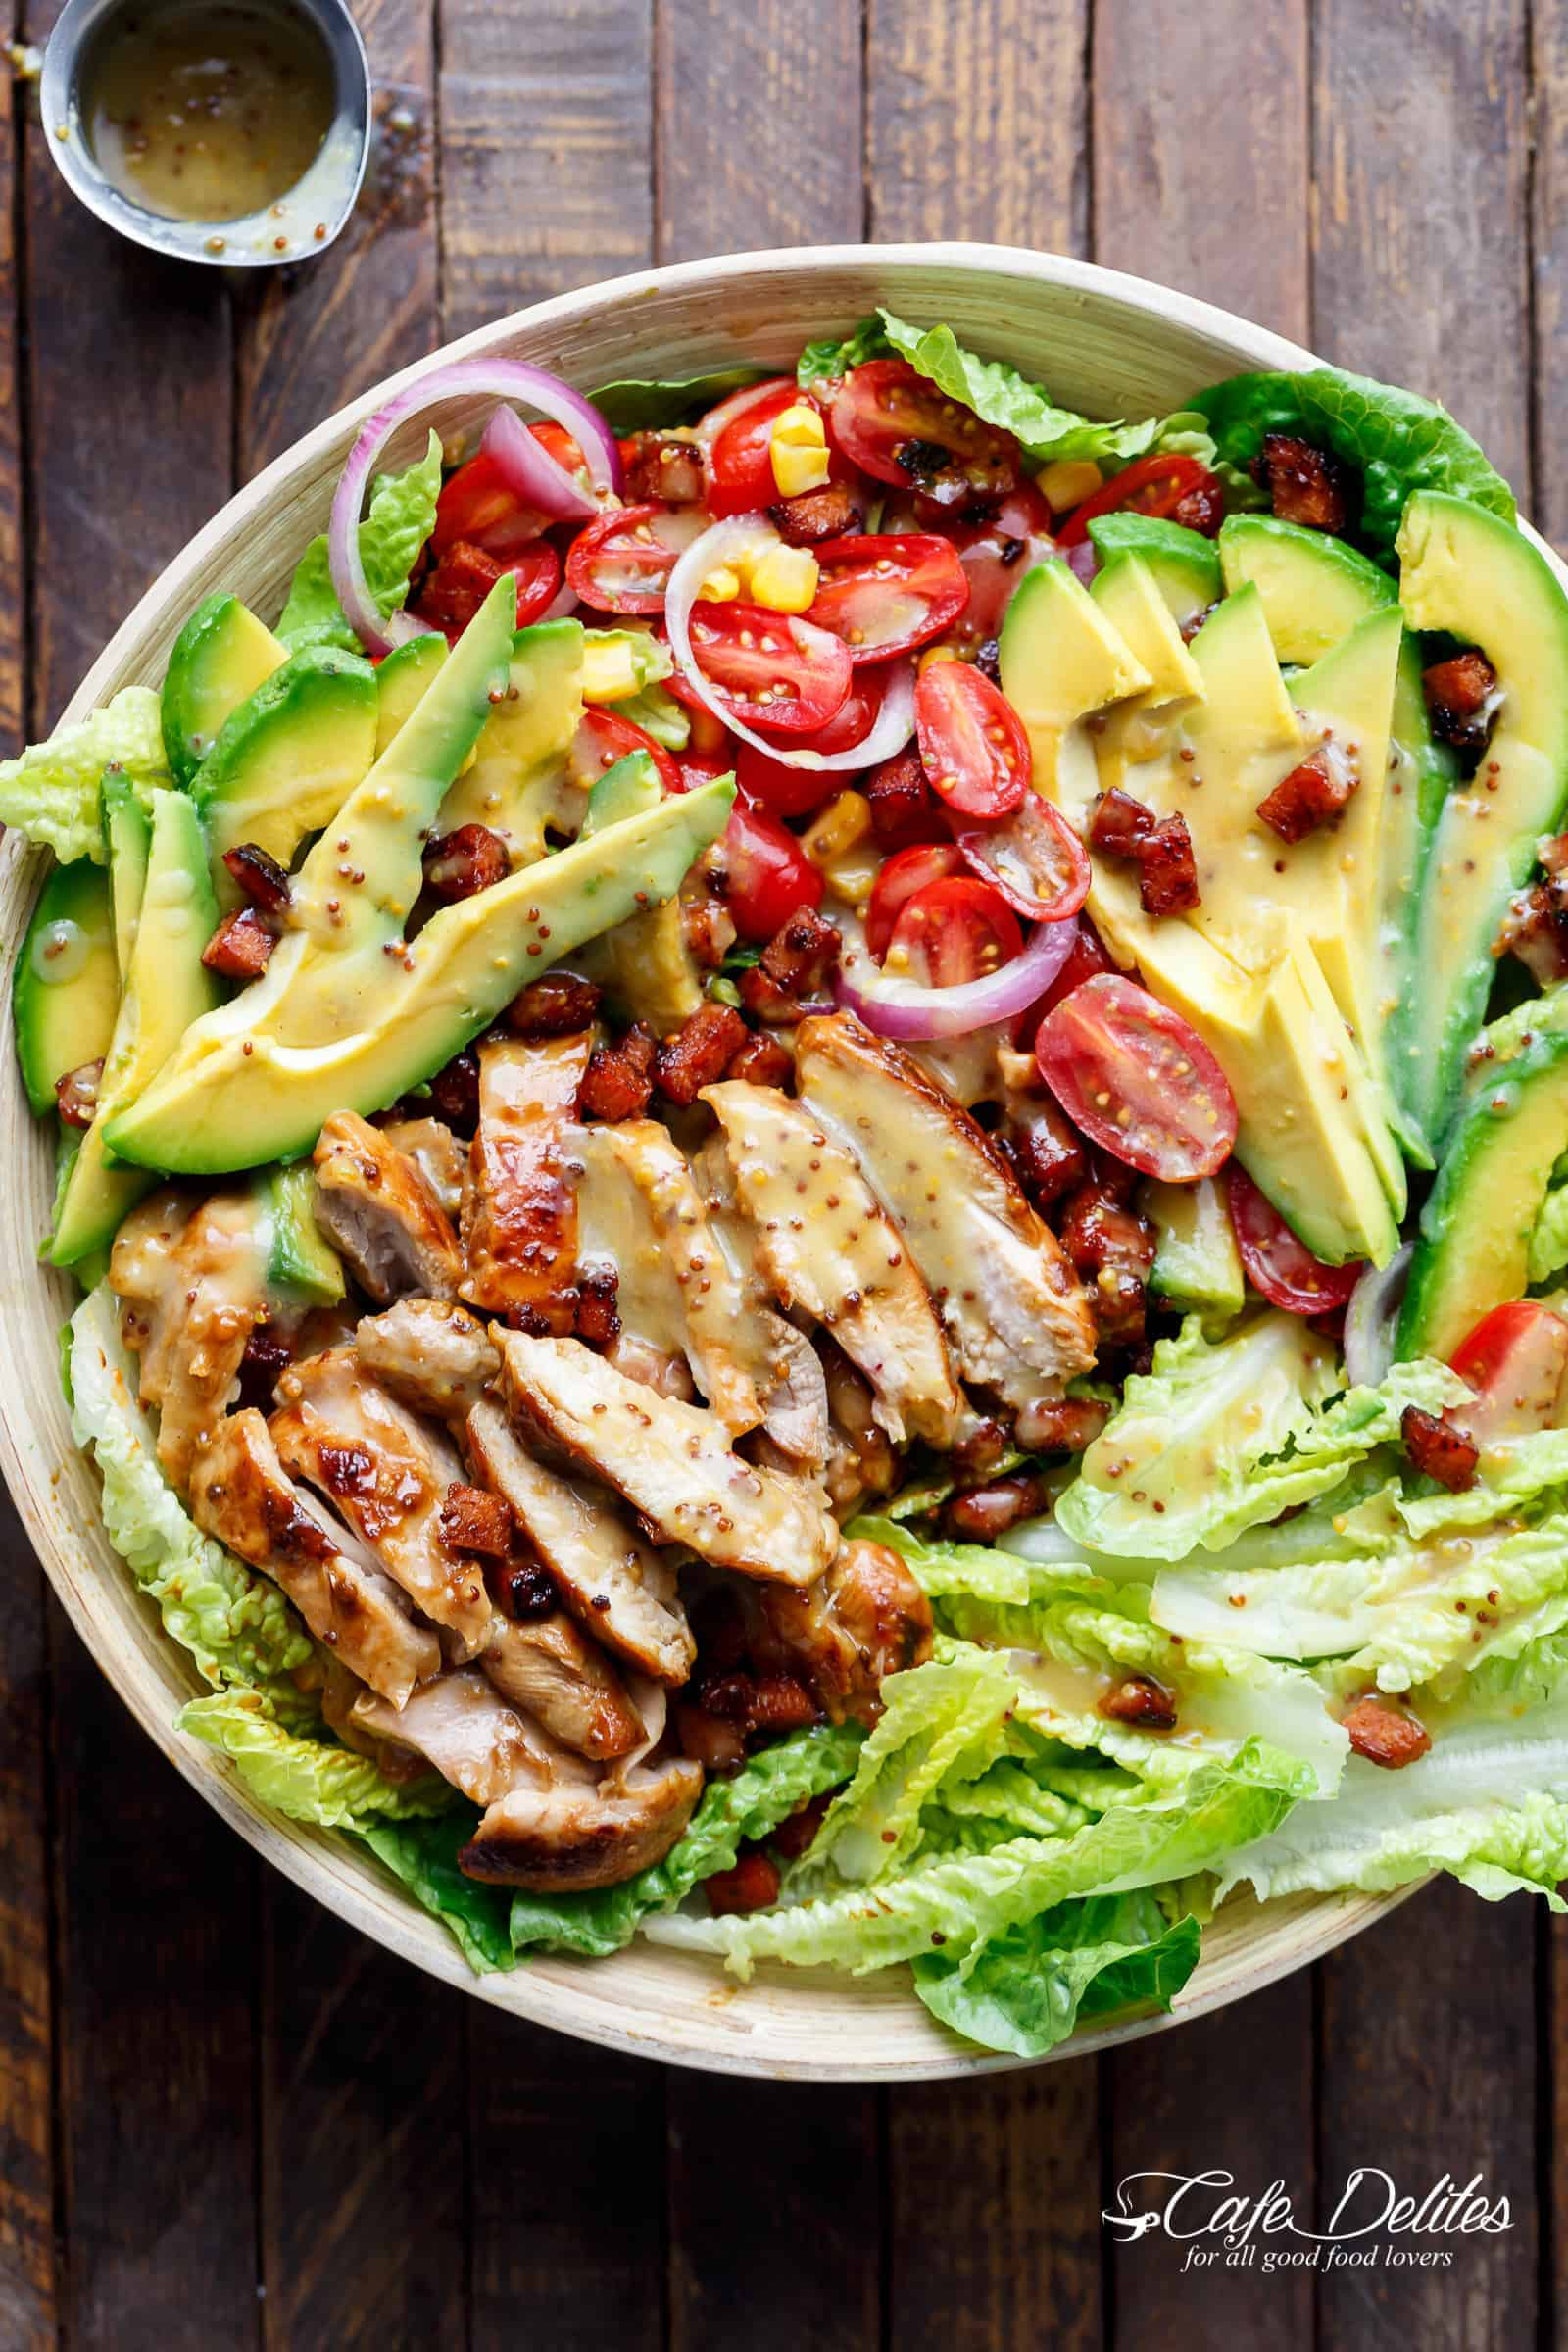 The most delicious birthday salads - 7 step by step recipes 95